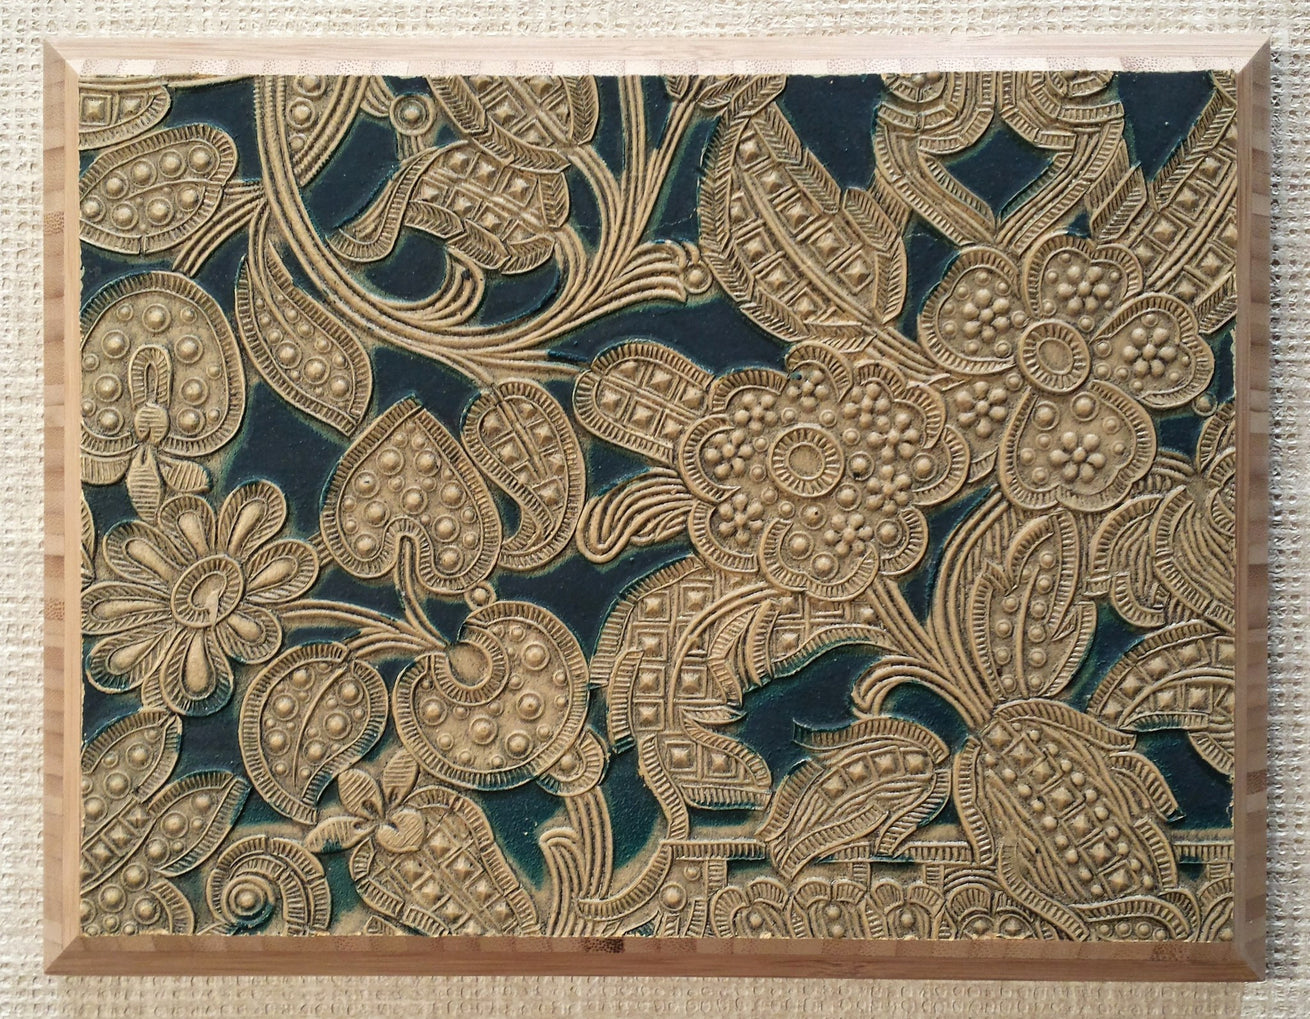 Lincrusta Tooled Leather Fragment - Mounted Antique Lincrusta Panel - Sold